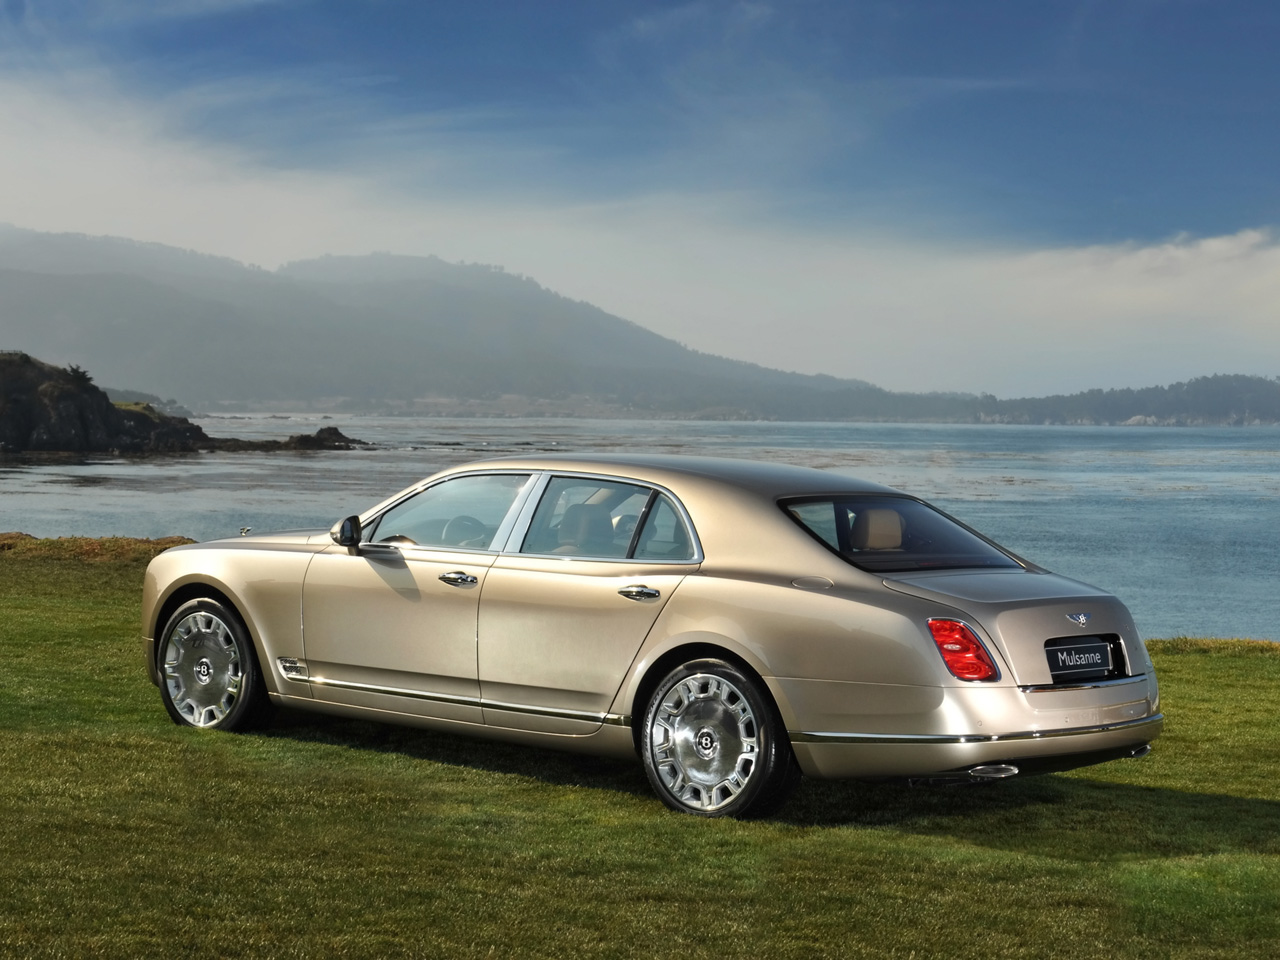 2010-Bentley-Mulsanne-Pebble-Beach-Rear-Angle-1280x960